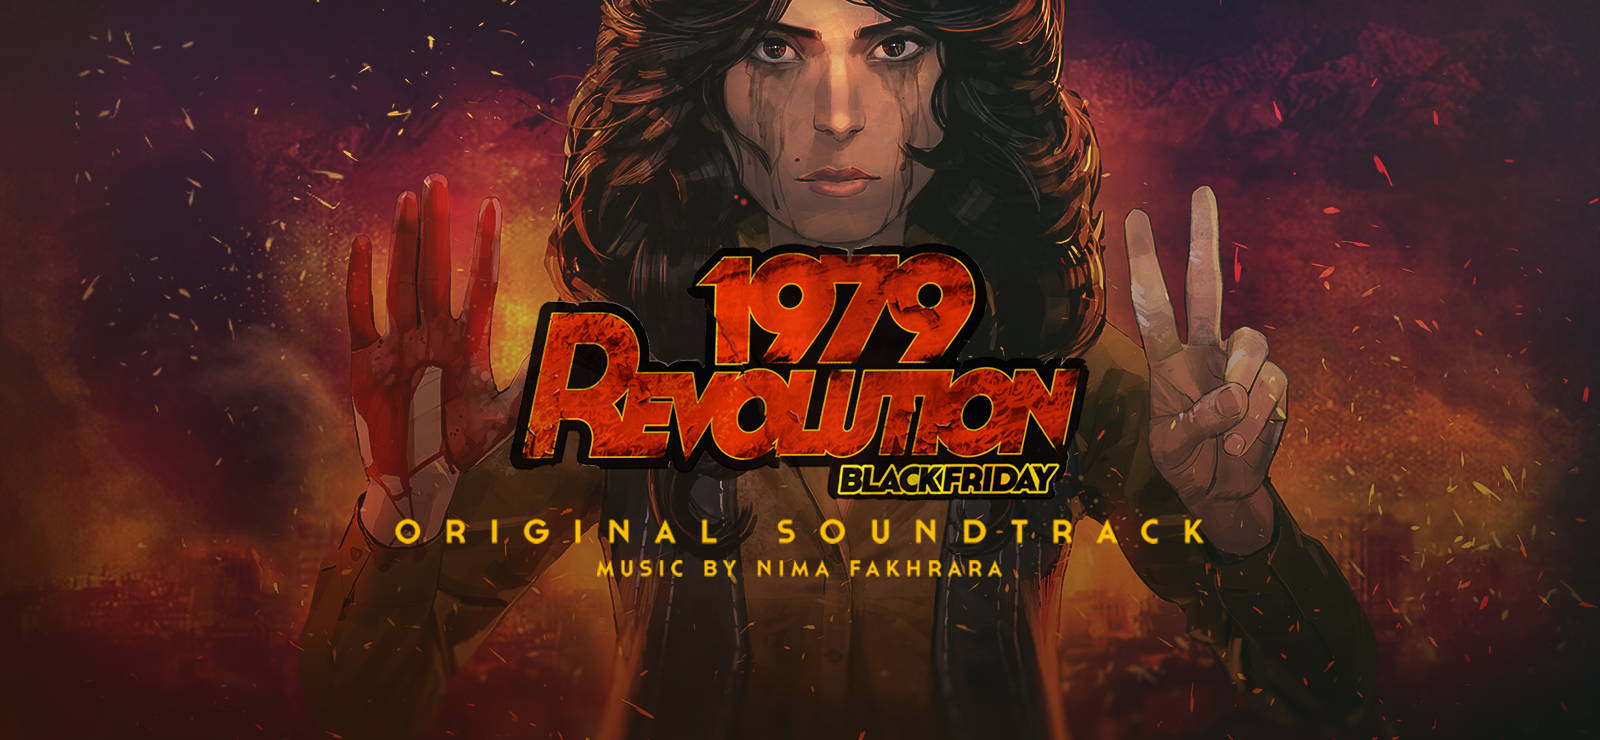 1979 Revolution: Black Friday Deluxe Edition [Online Game Code]